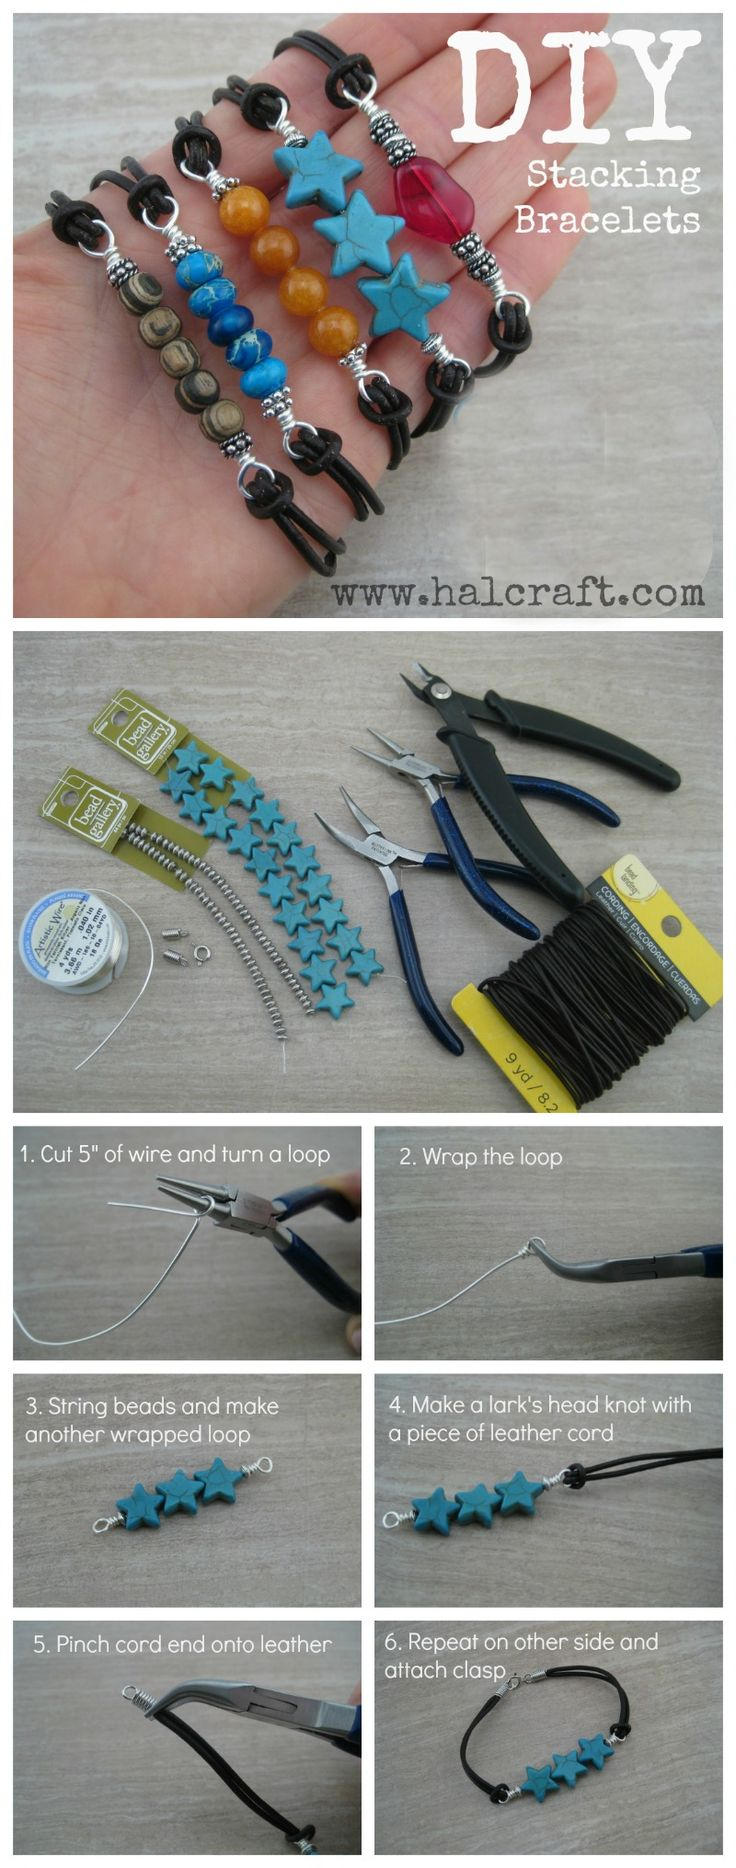 """Learn to make your own #leather and #bead #stackingbracelets in this DIY tutorial sure to use up your """"leftover"""" bead stash!"""